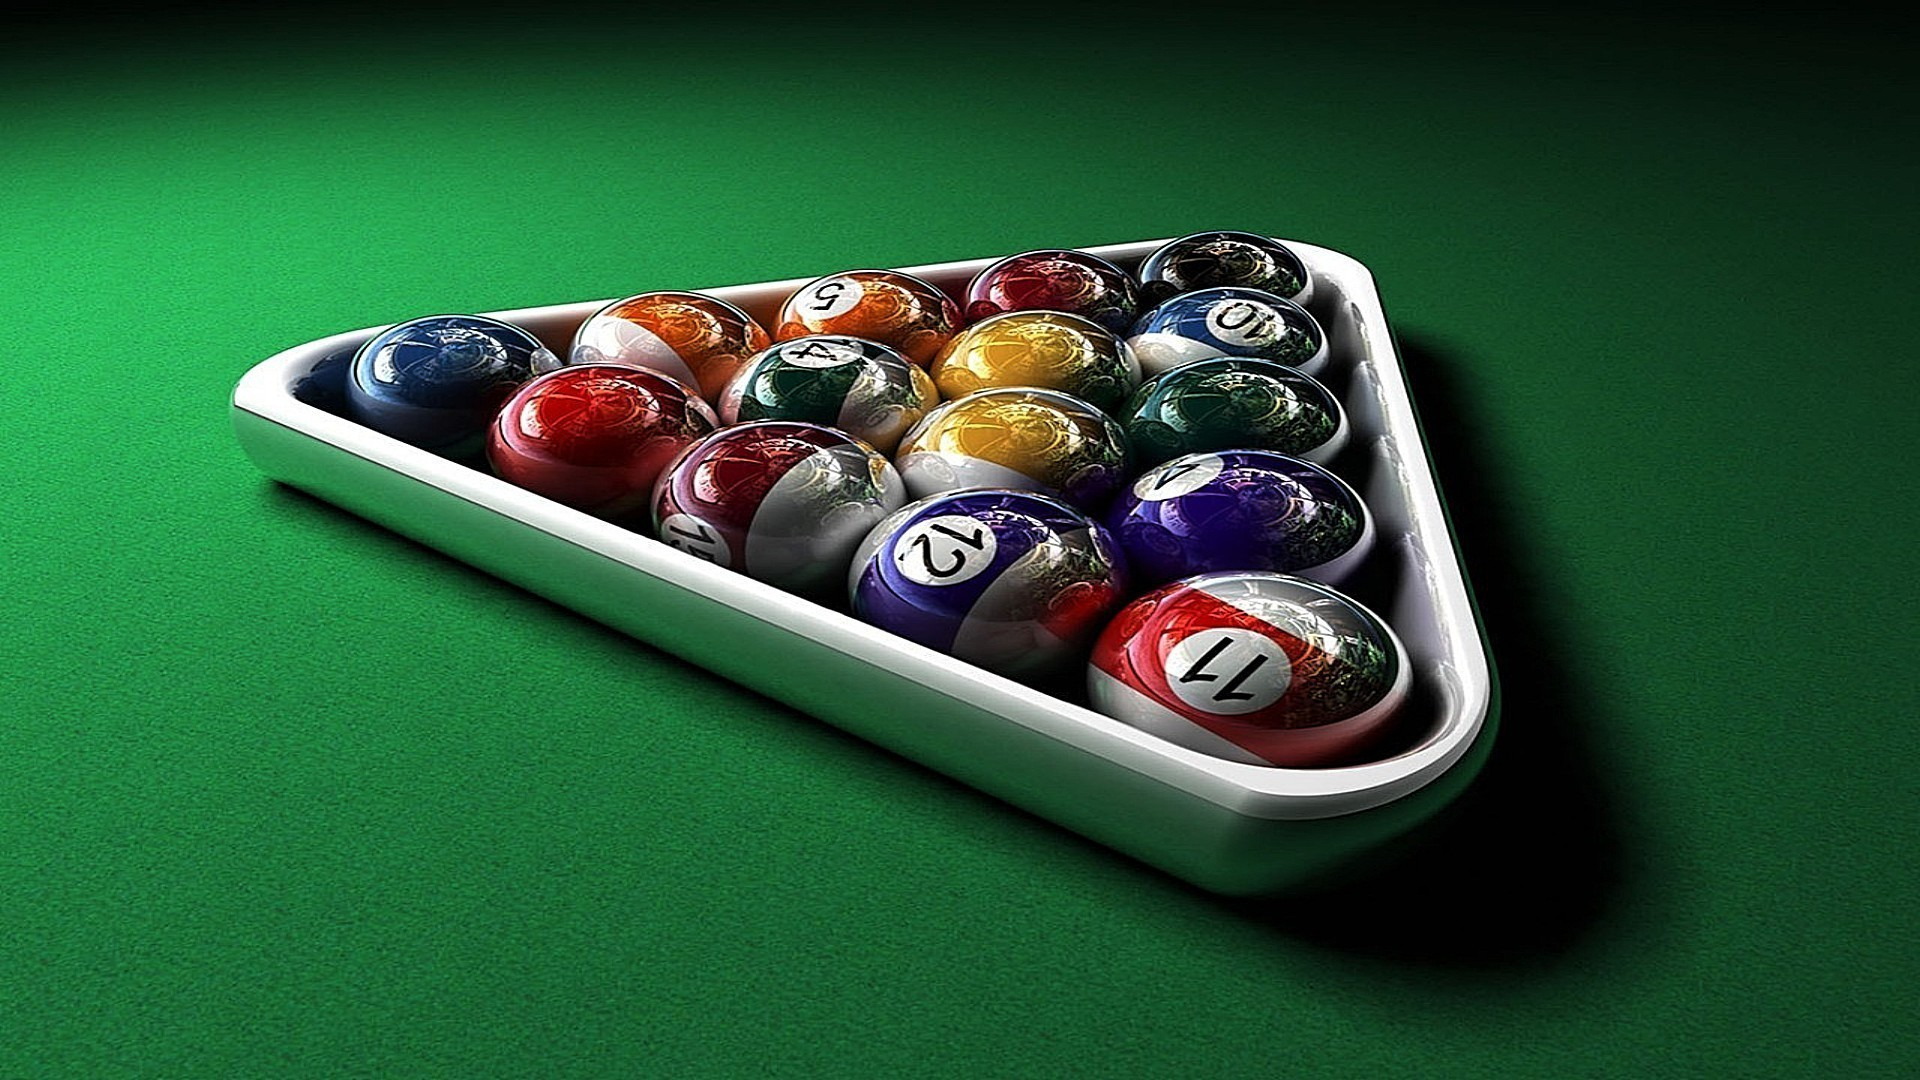 computer games snooker play cue pool game gambling leisure recreation sport casino desktop chance